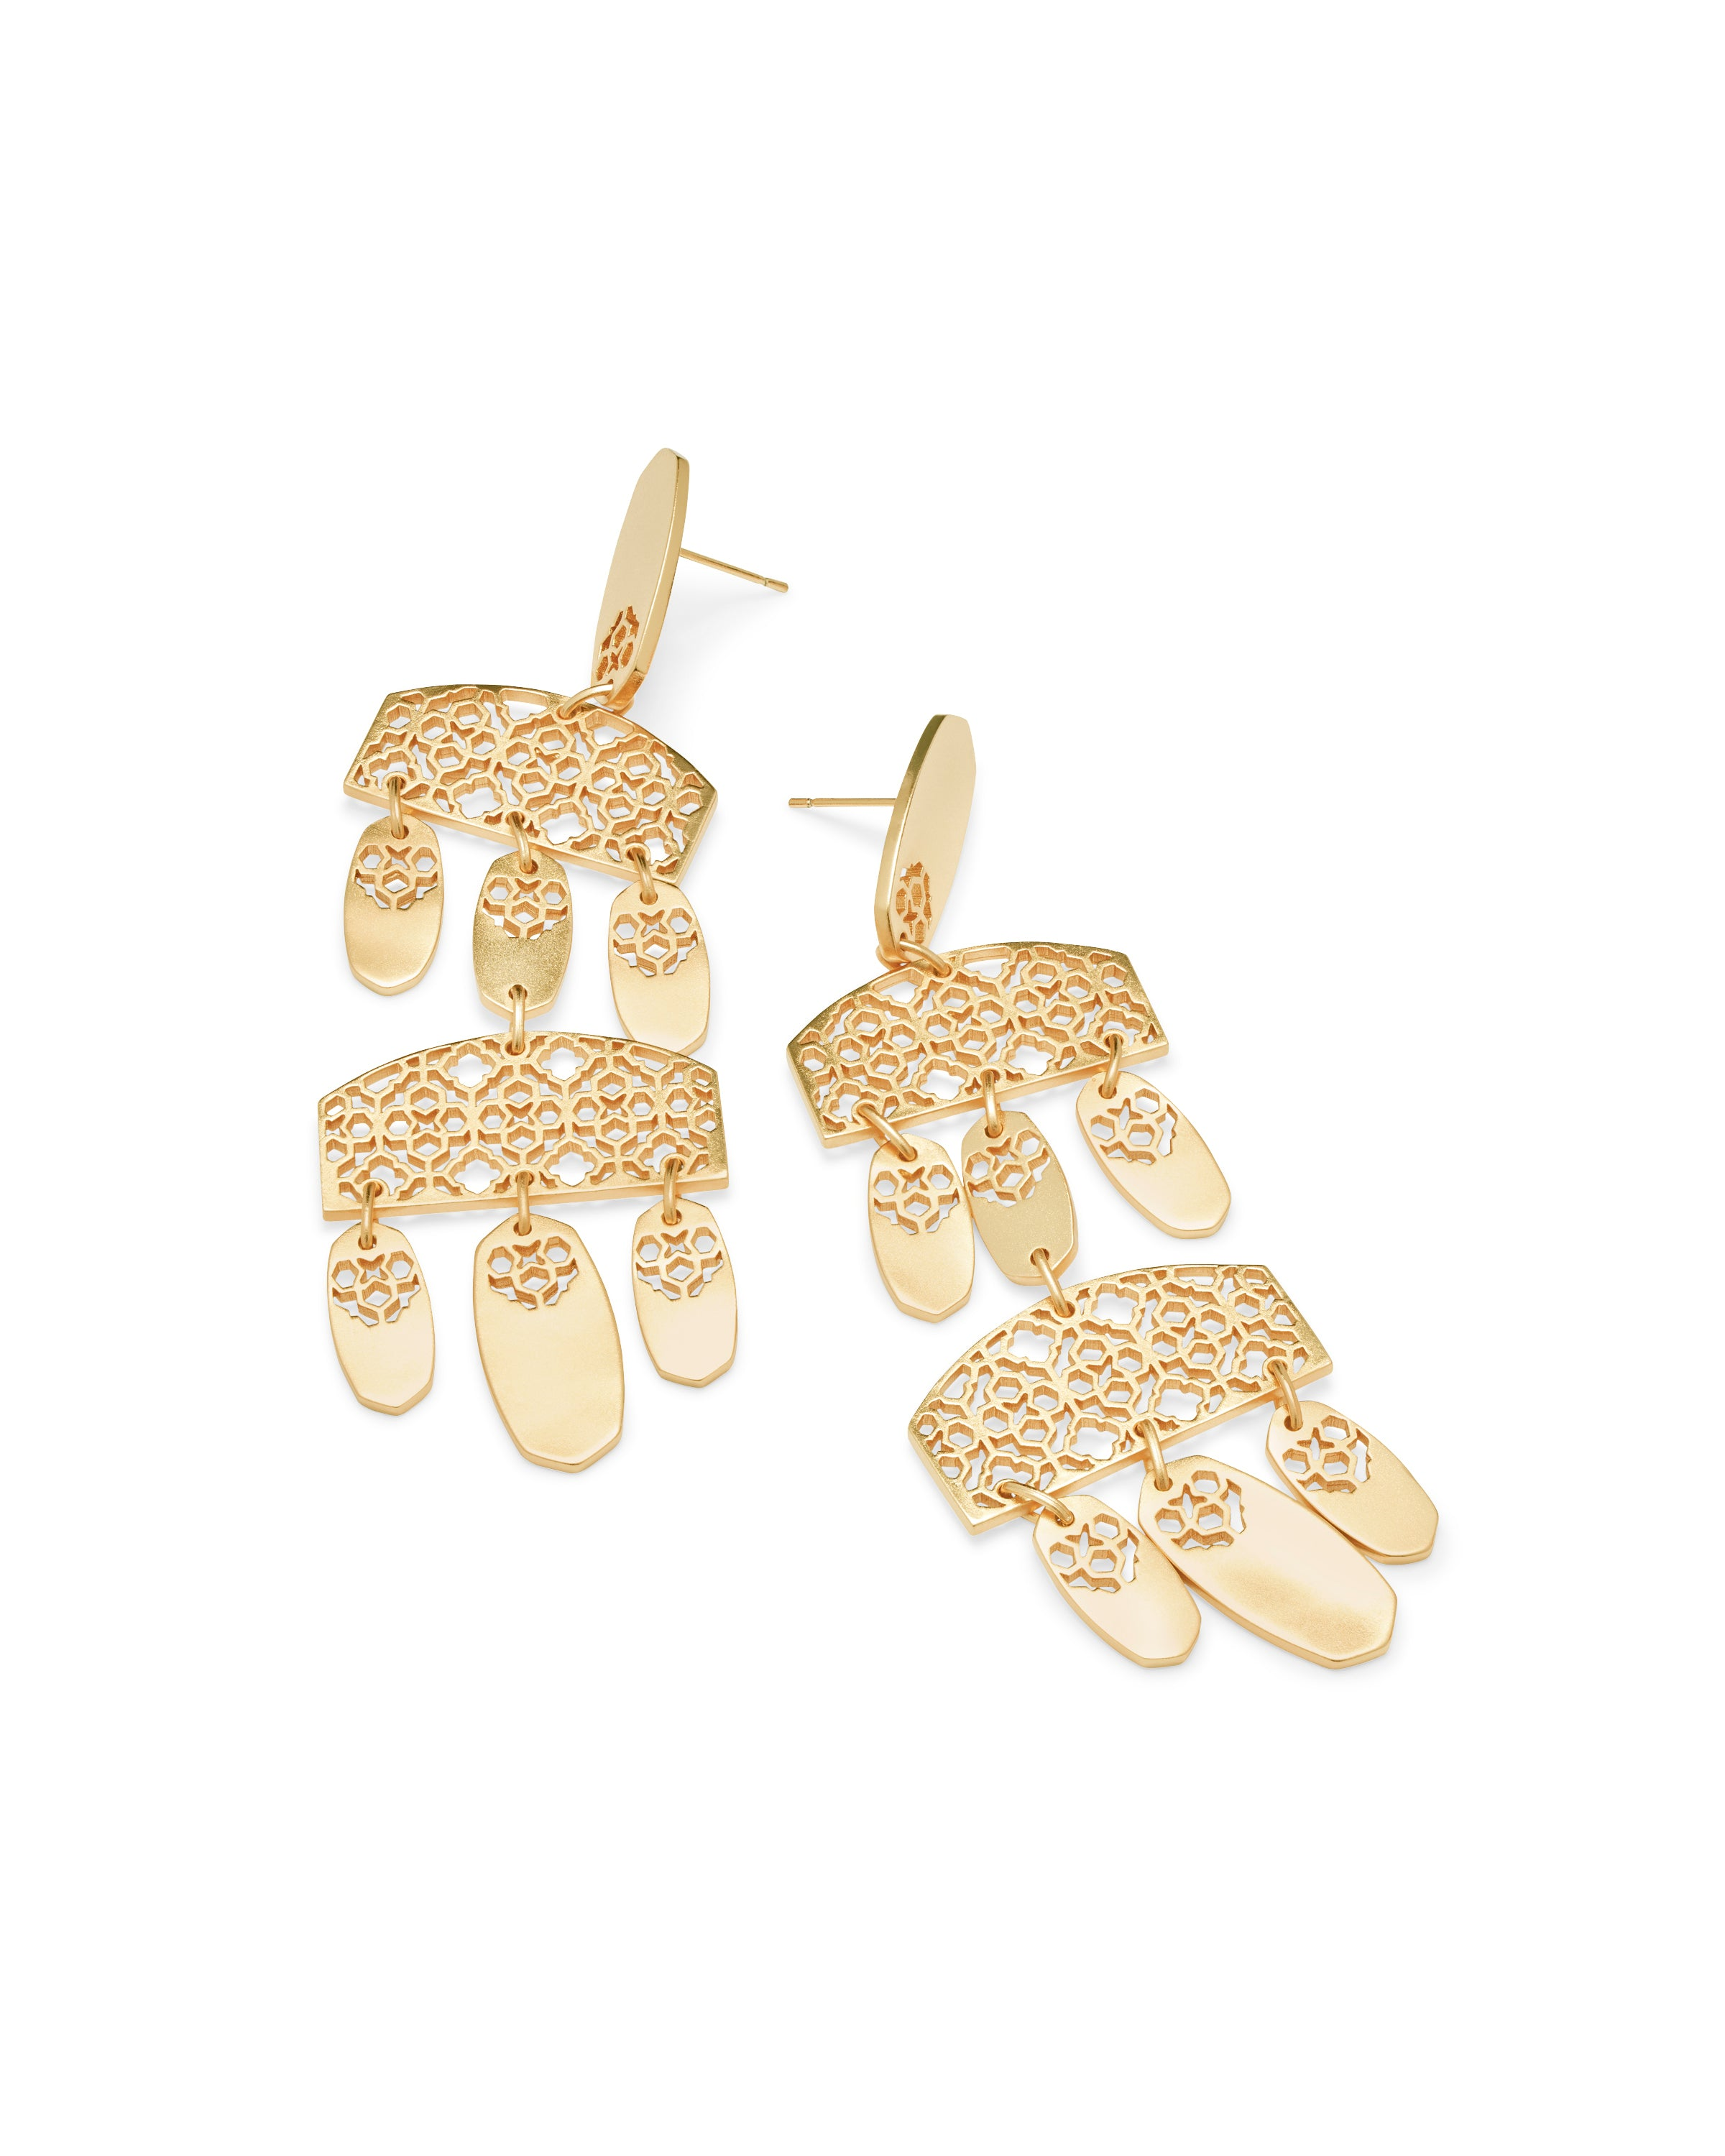 Kendra Scott Emmet Earring in Gold Filigree Metal